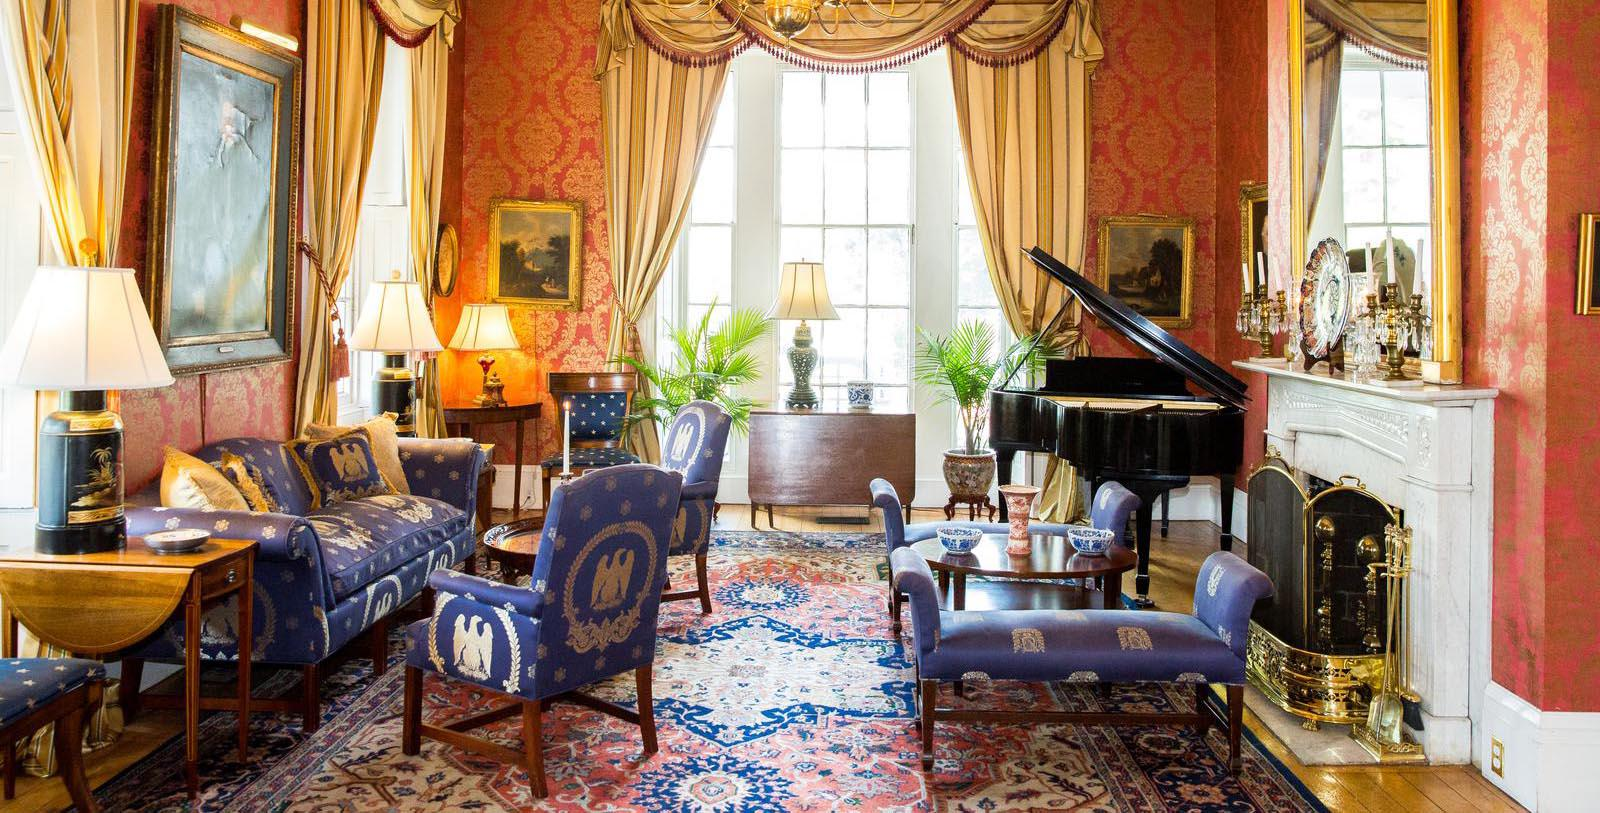 Image of Hotel Lobby with Grand Piano at Antrim 1844, Member of Historic Hotels of America, in Taneytown, Maryland, Discover